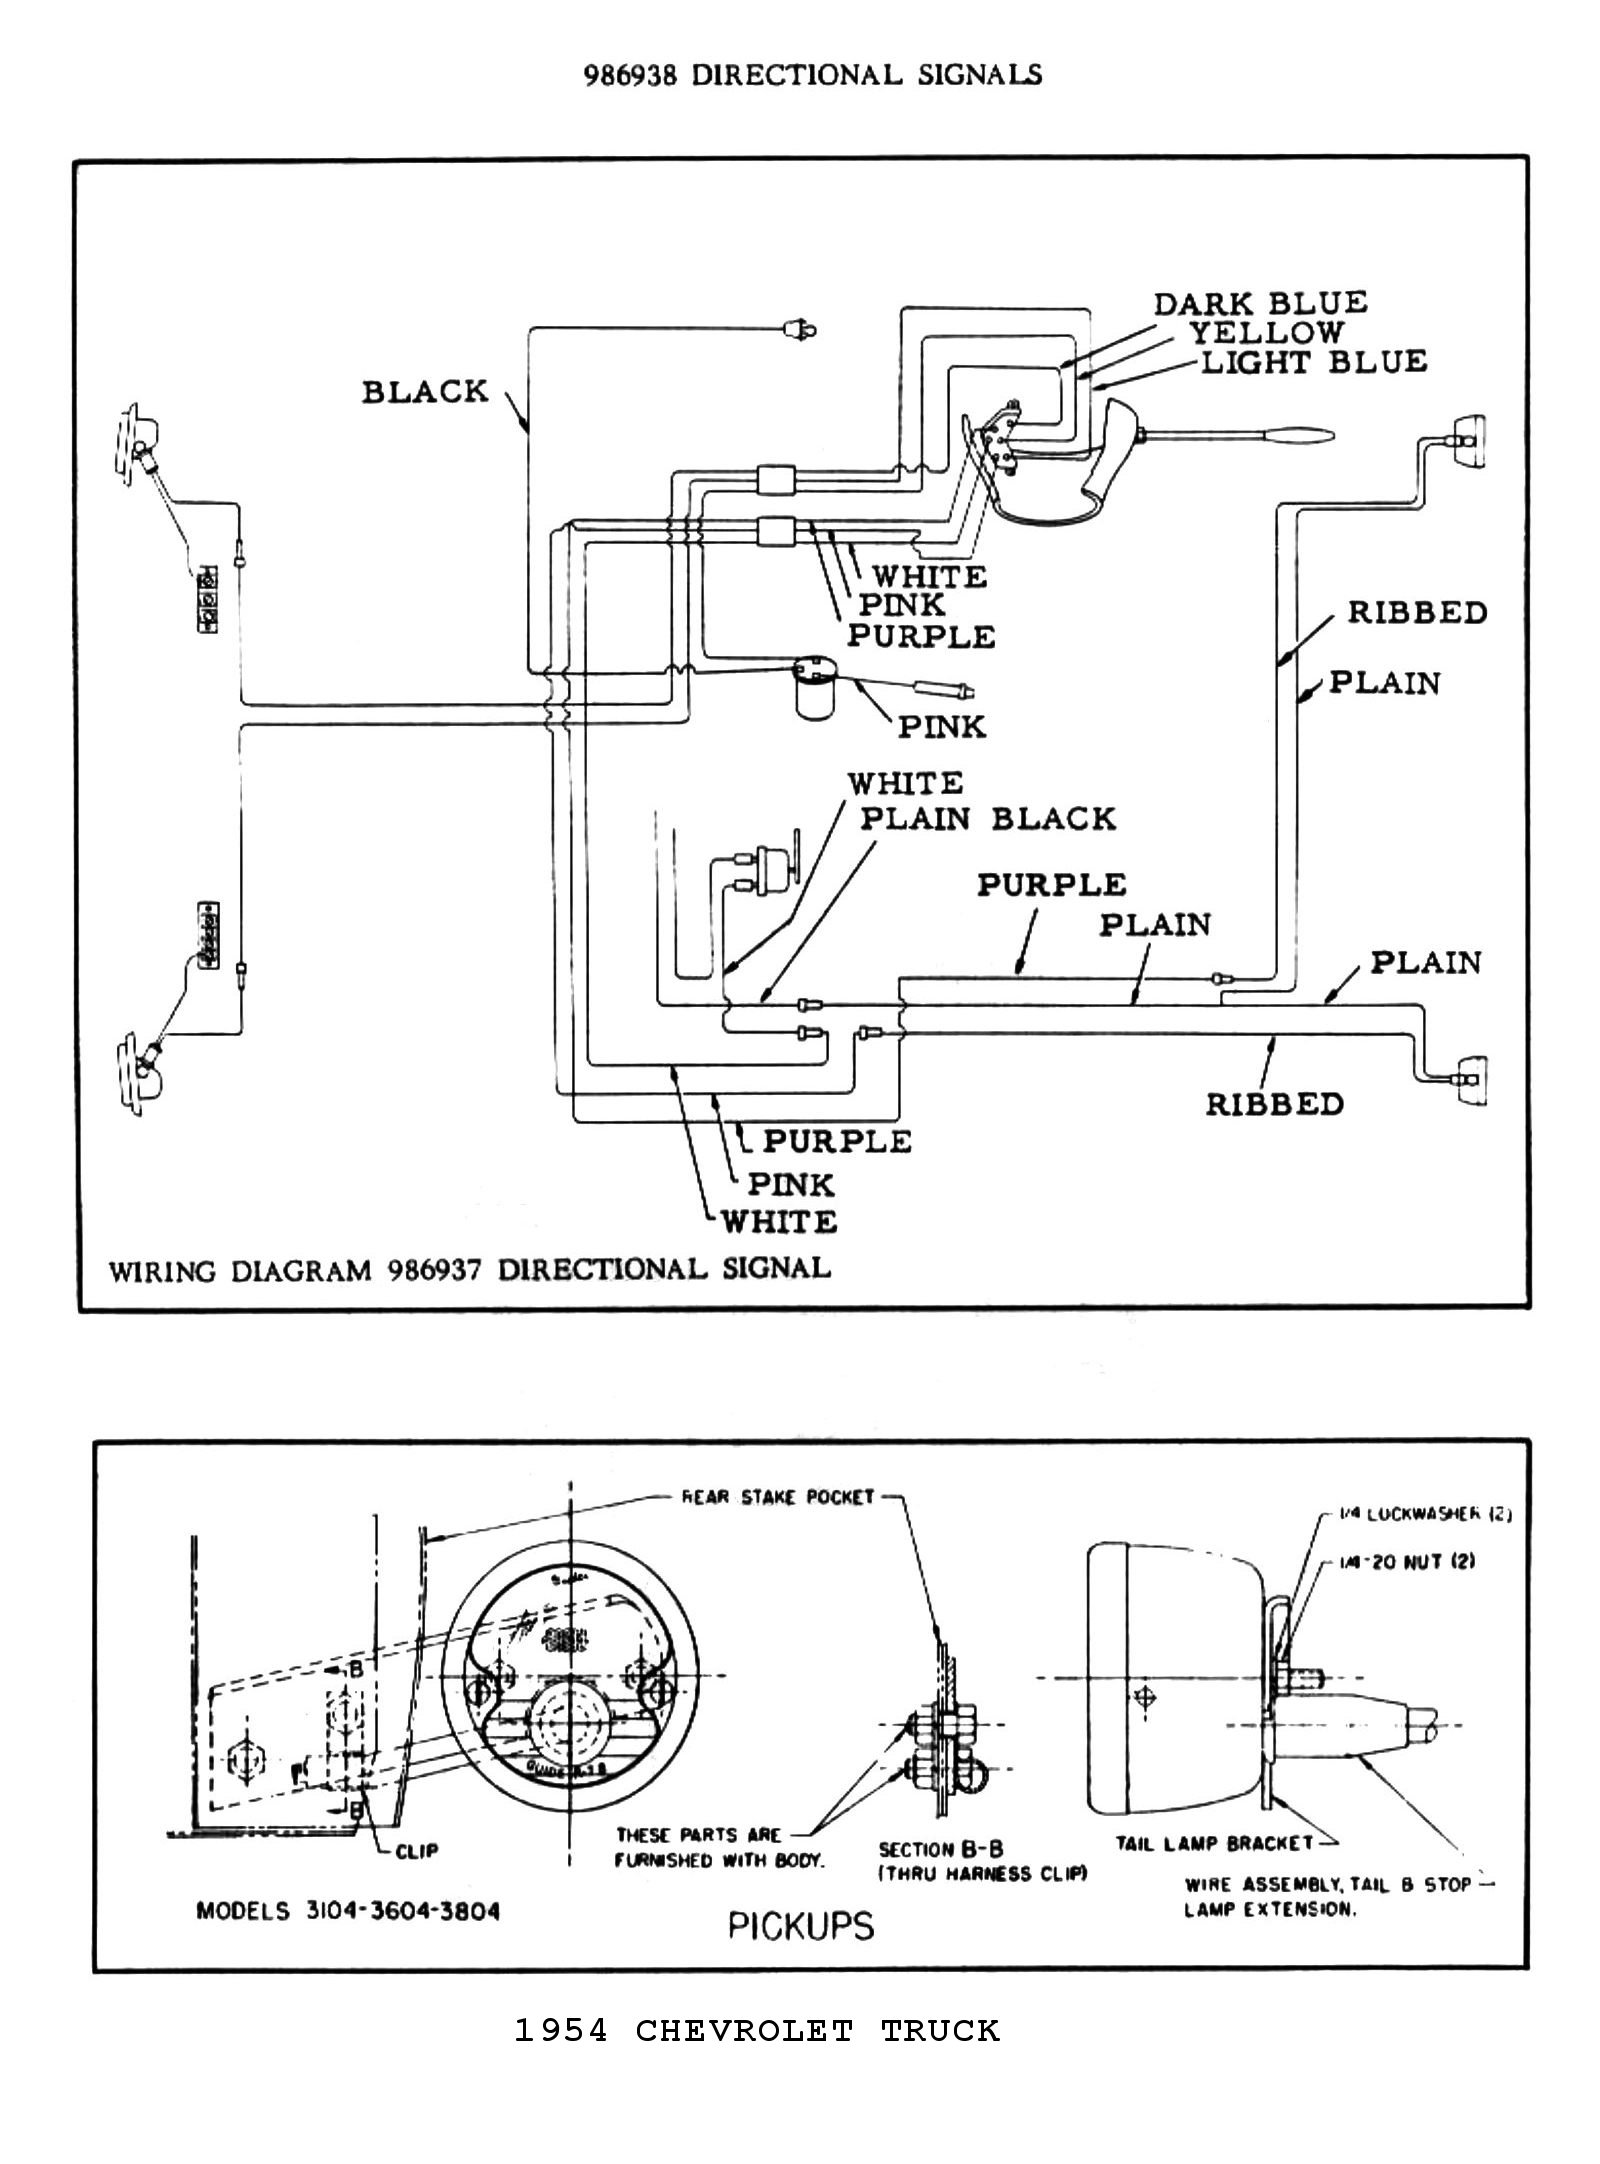 wiring diagram for motorcycle turn signals wiring diagram signals 54 chevy 3100 headlight headache - the stovebolt forums